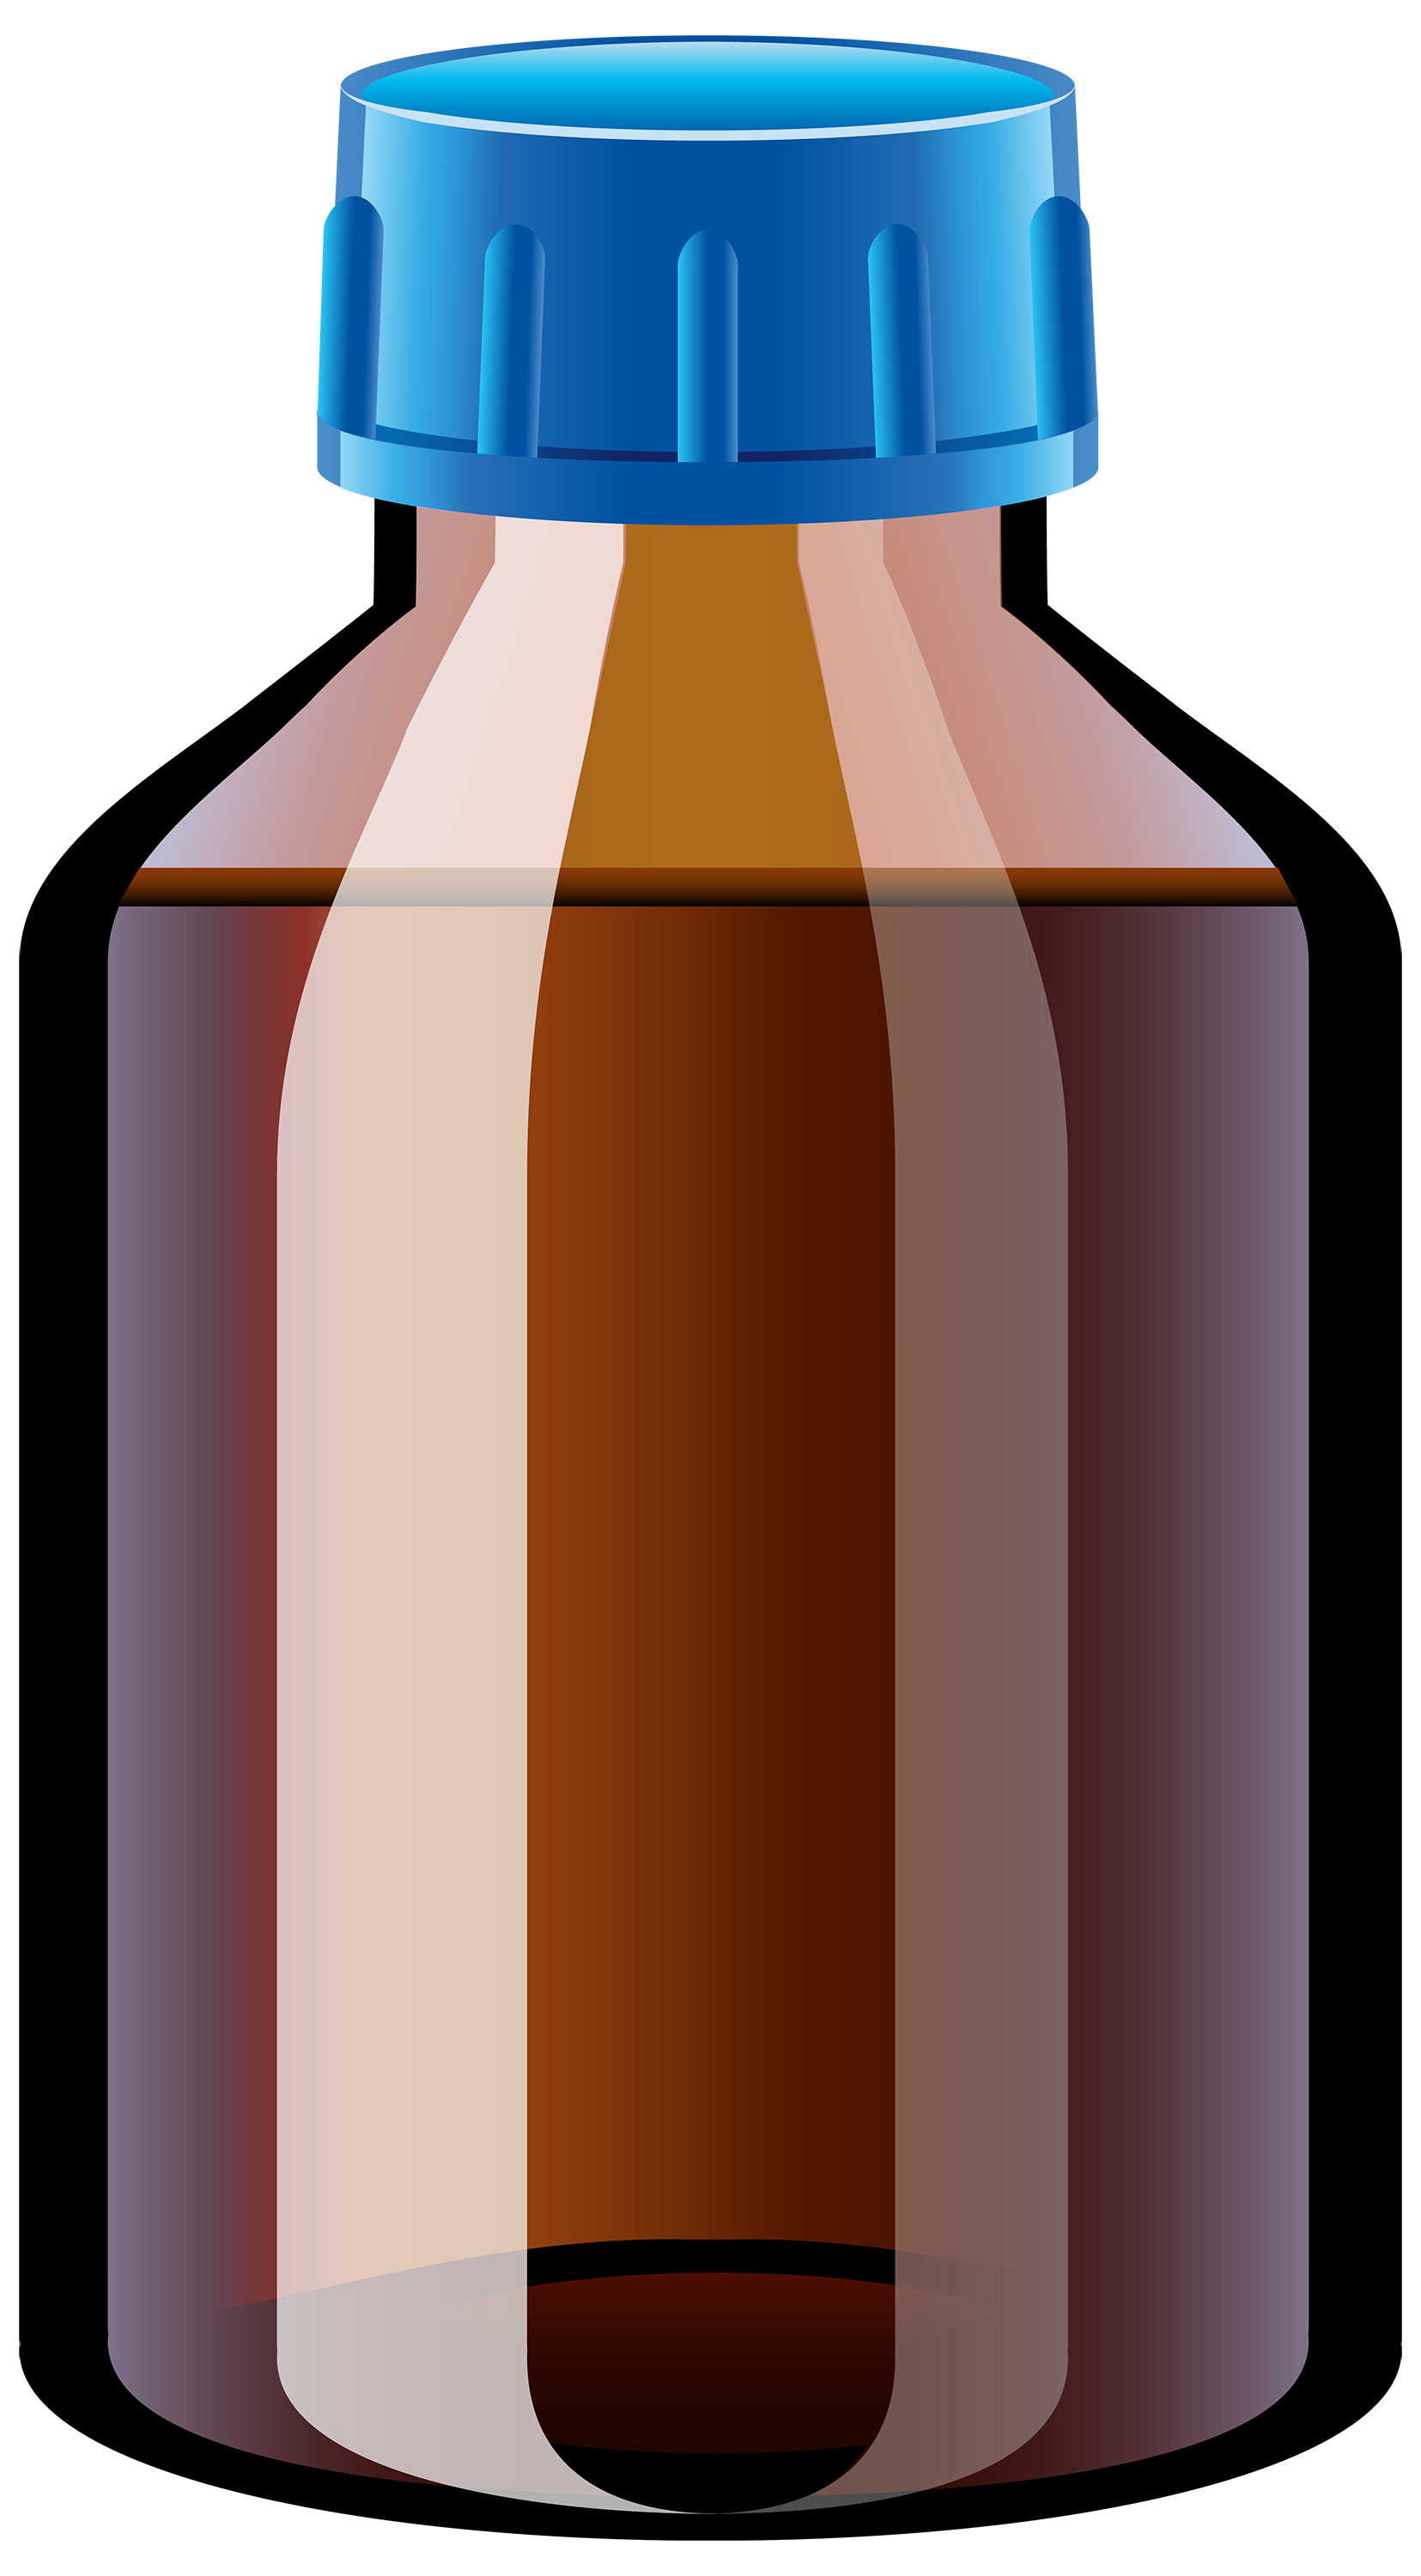 collection of old. Pill bottle png